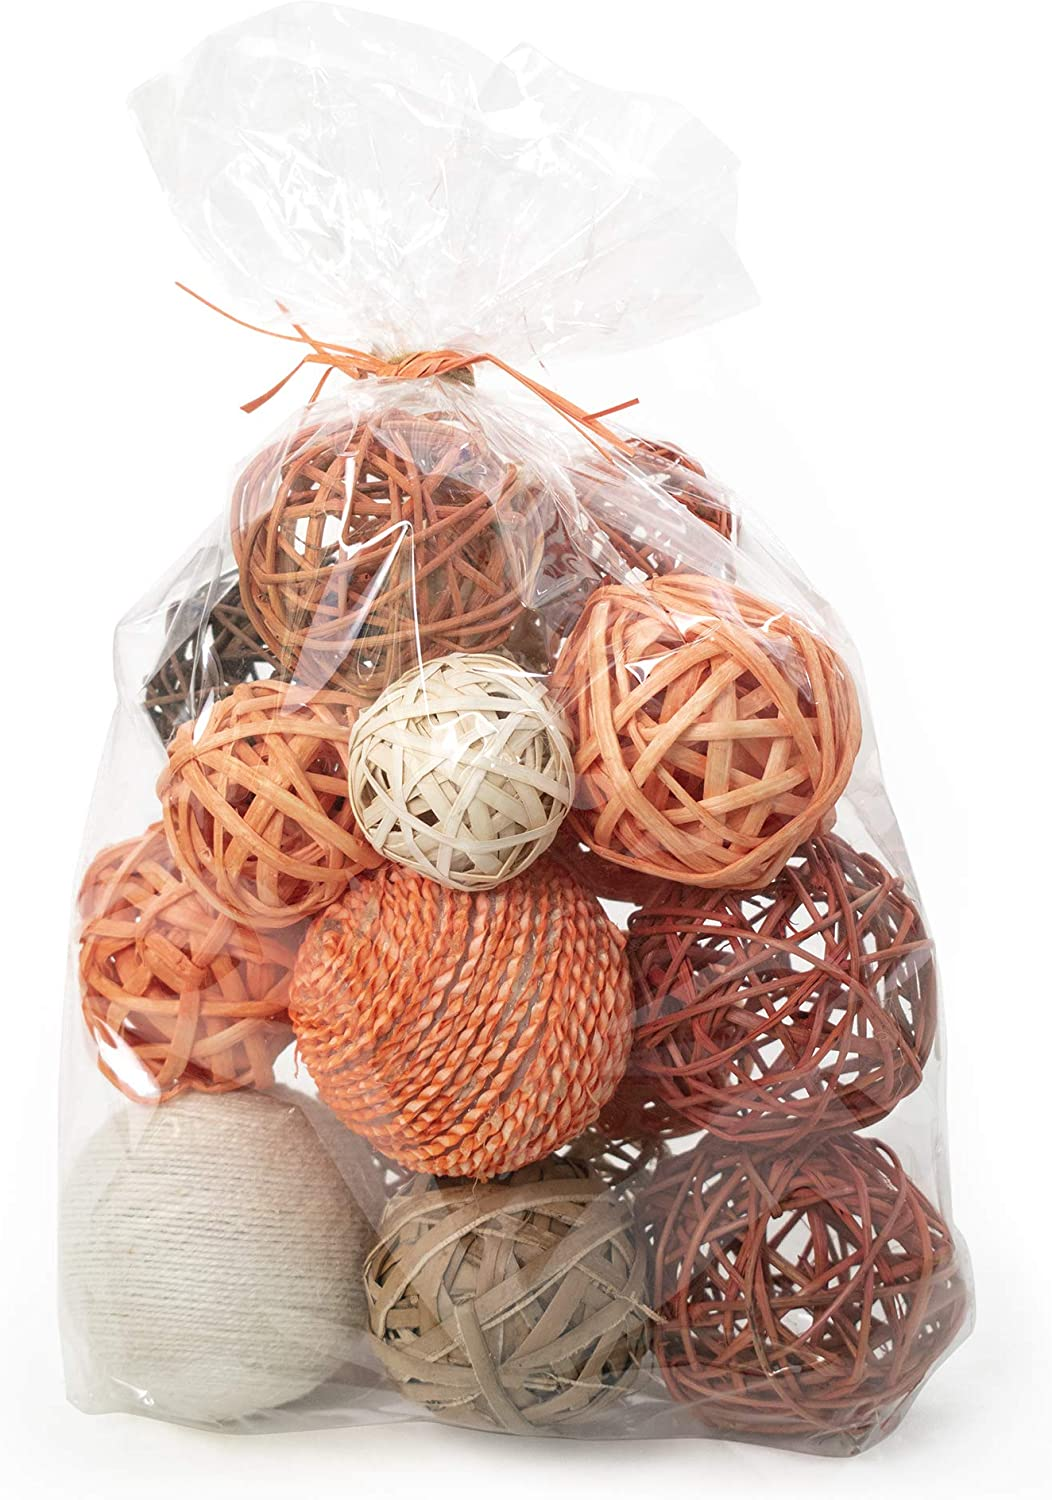 ANDALUCA Decorative Vase Filler Bag with Orbs, Balls (Burnt Orange)